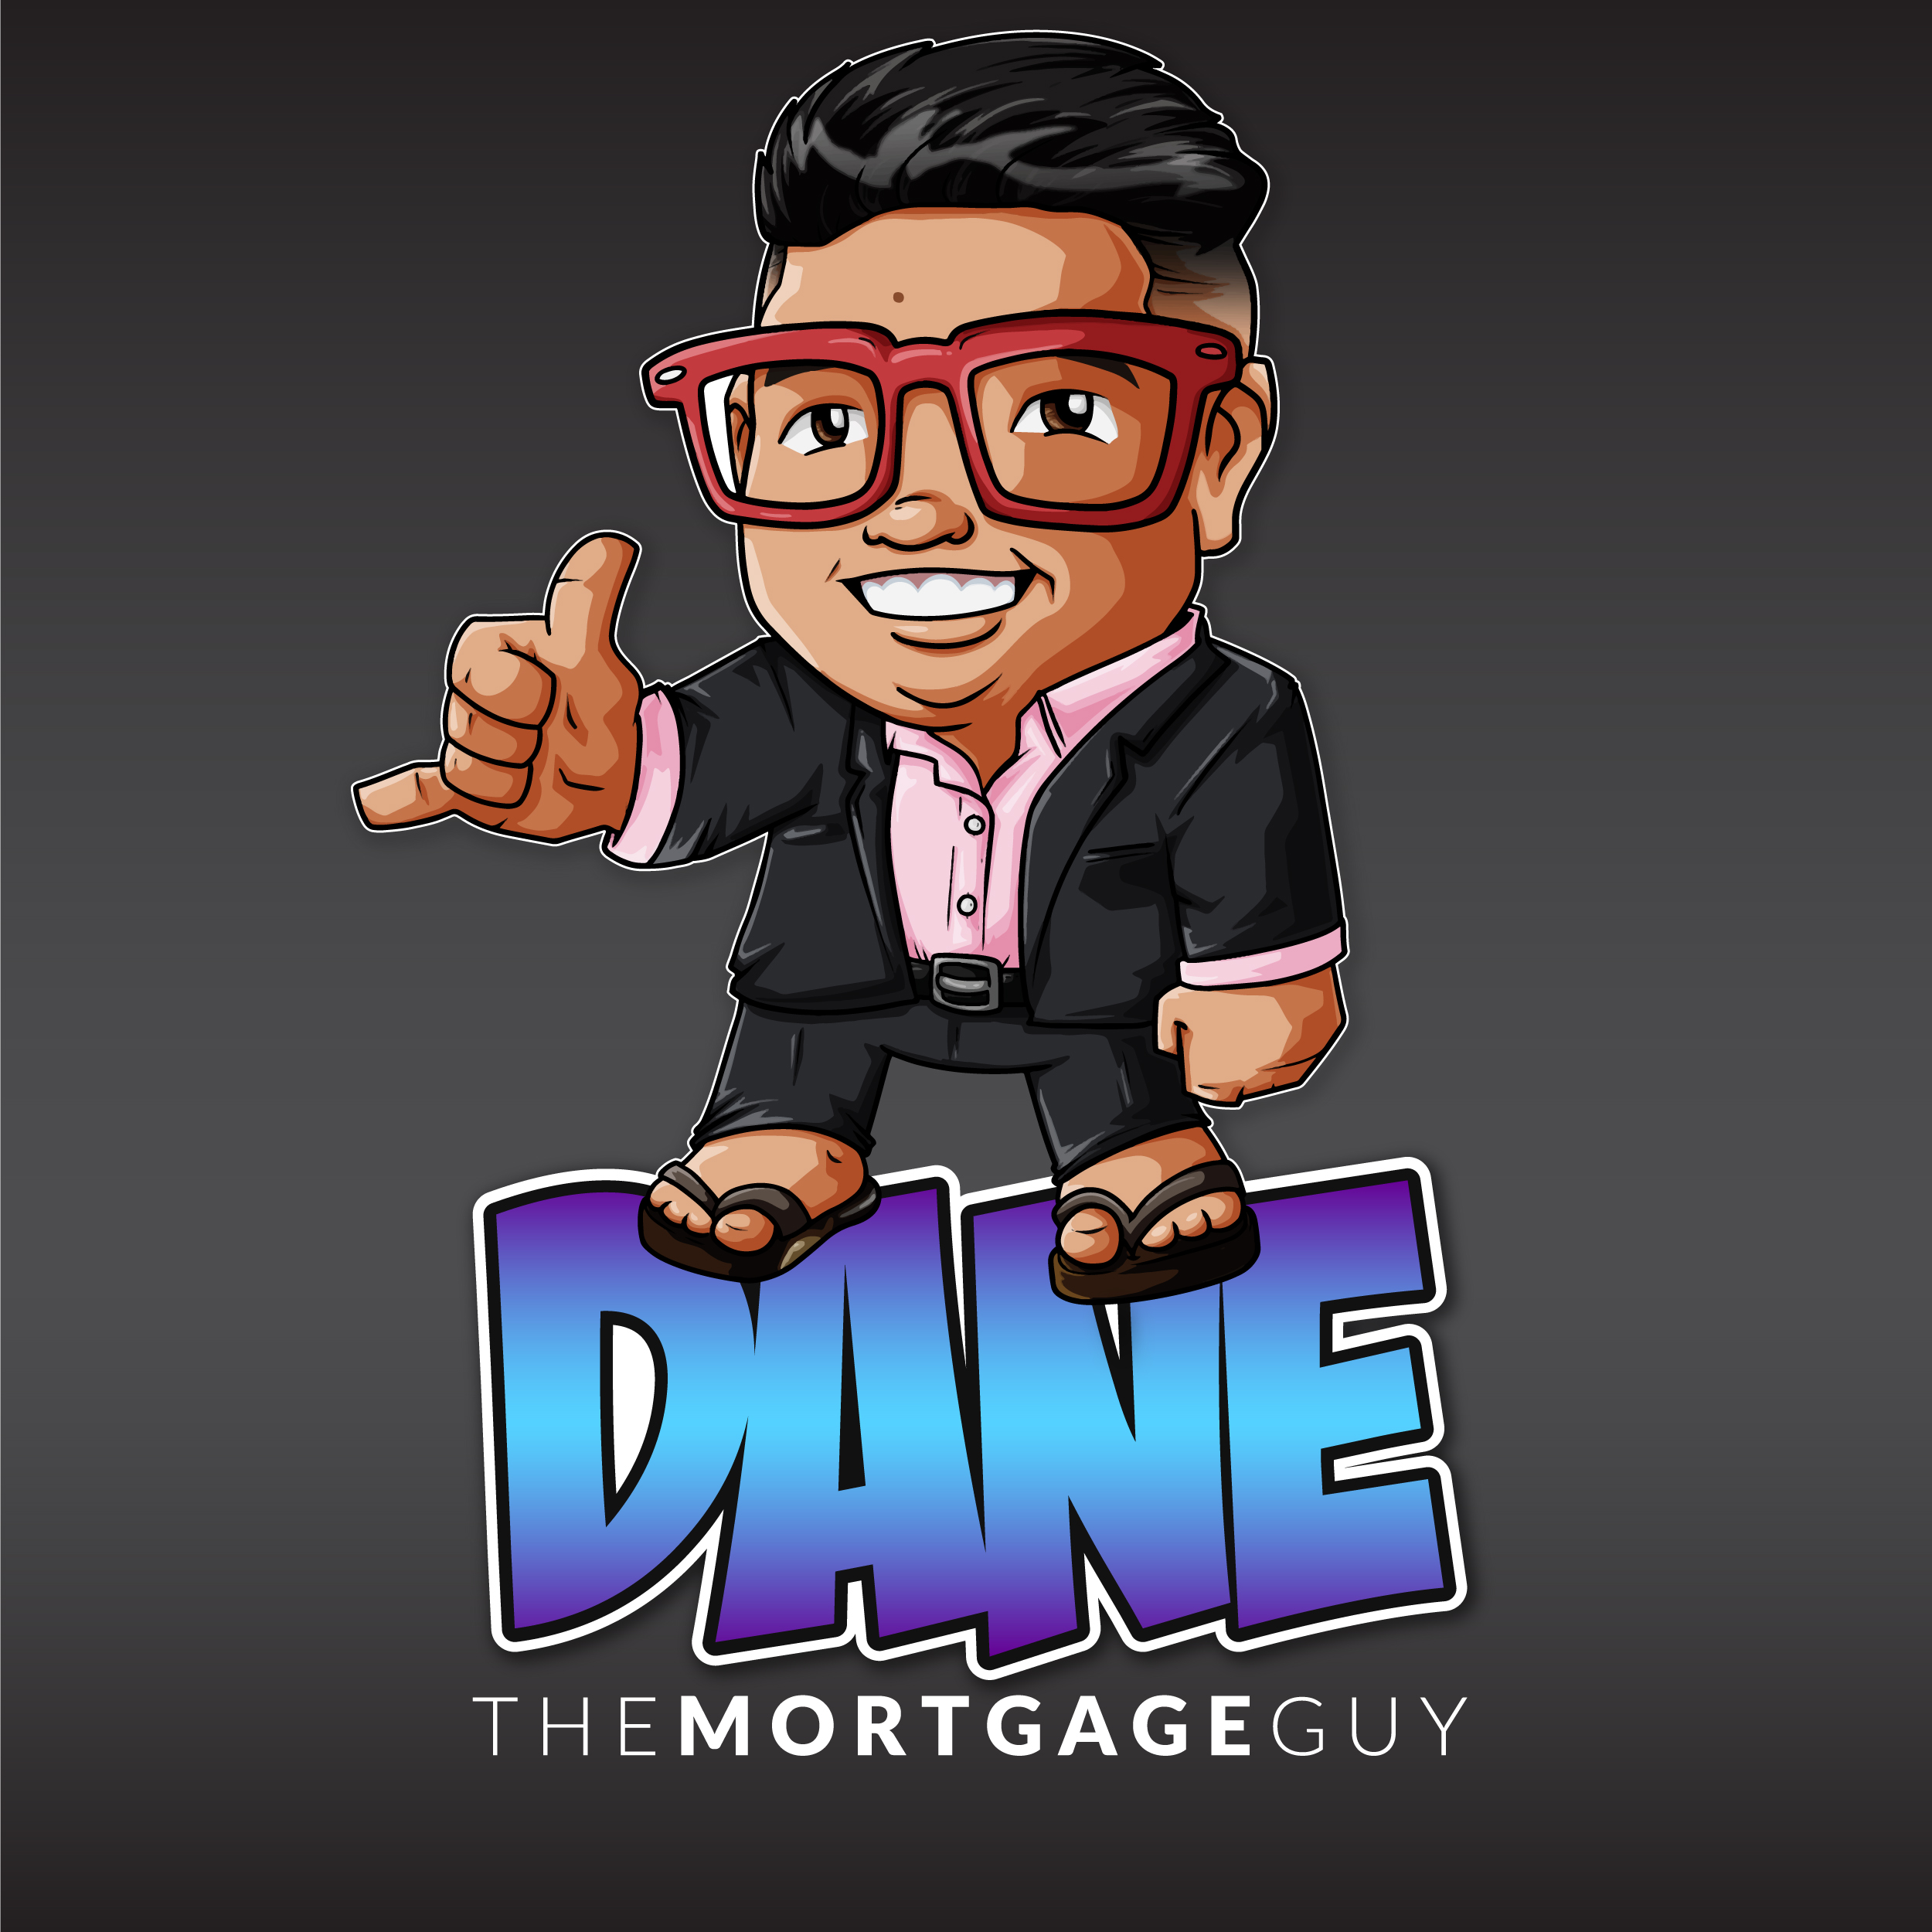 Dane the Mortgage Guy